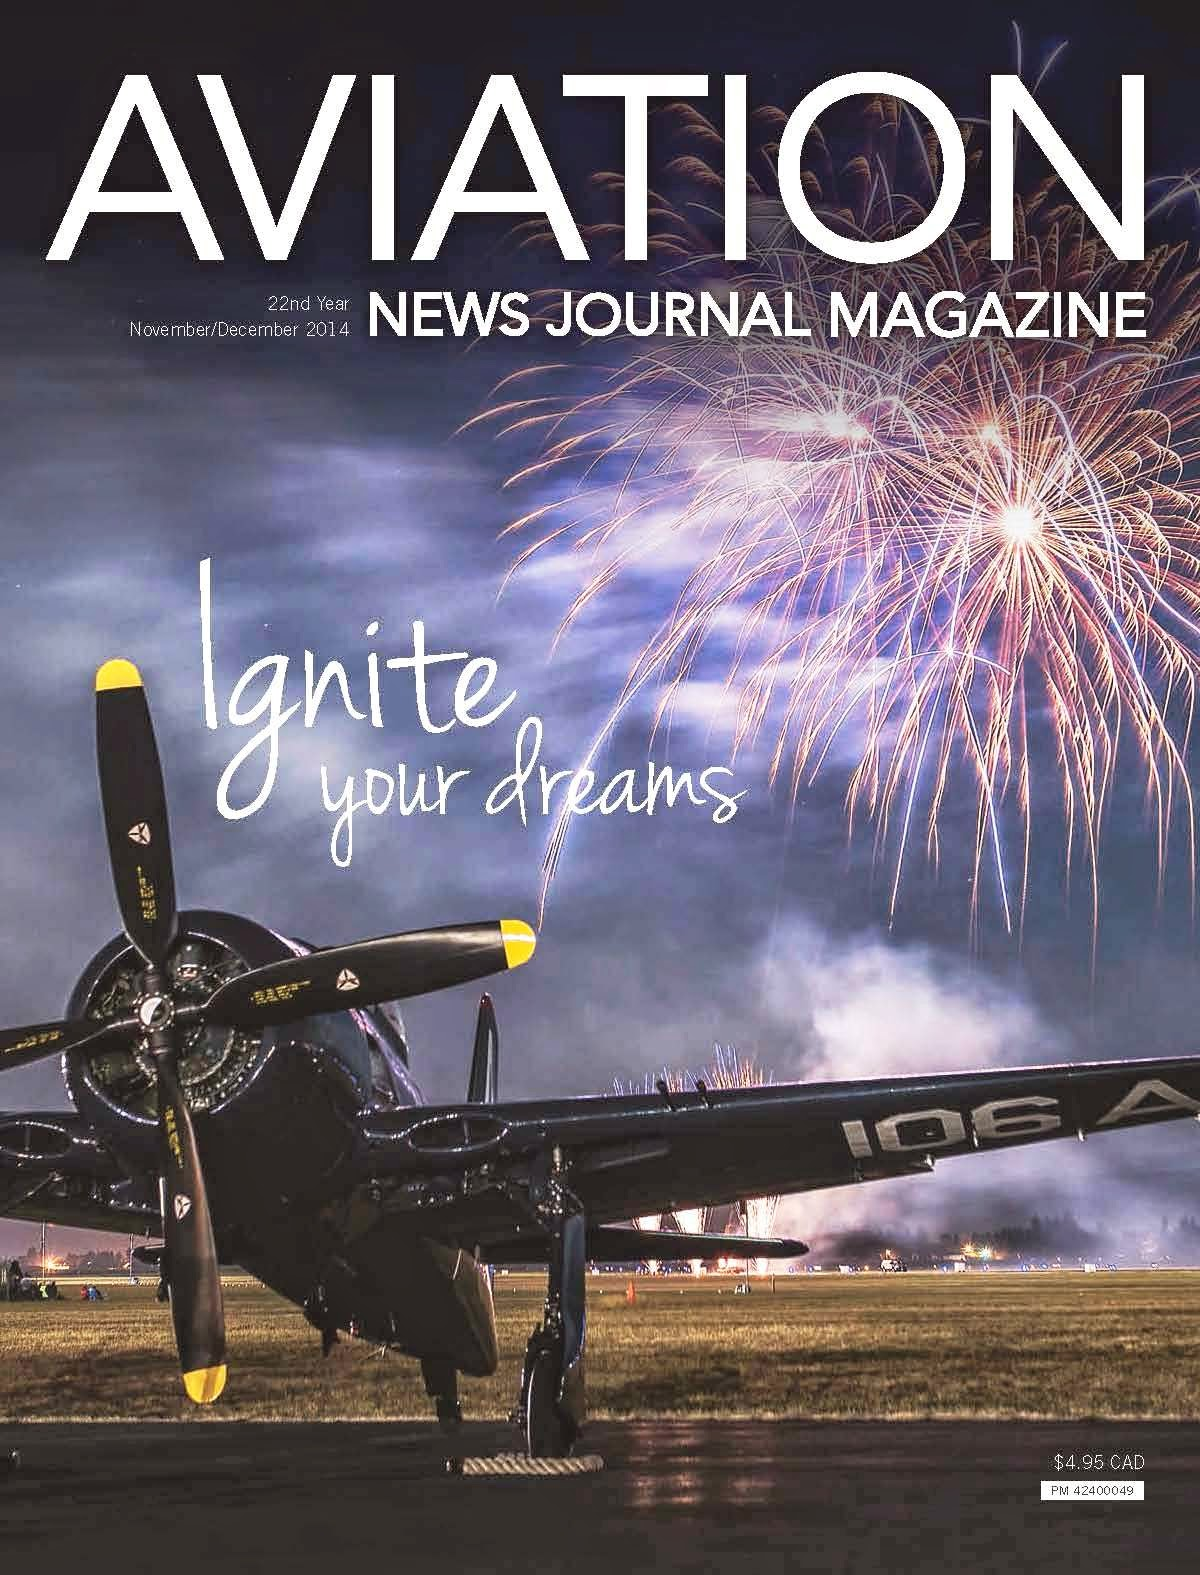 Aviation News Journal Nov./Dec. Issue Available!